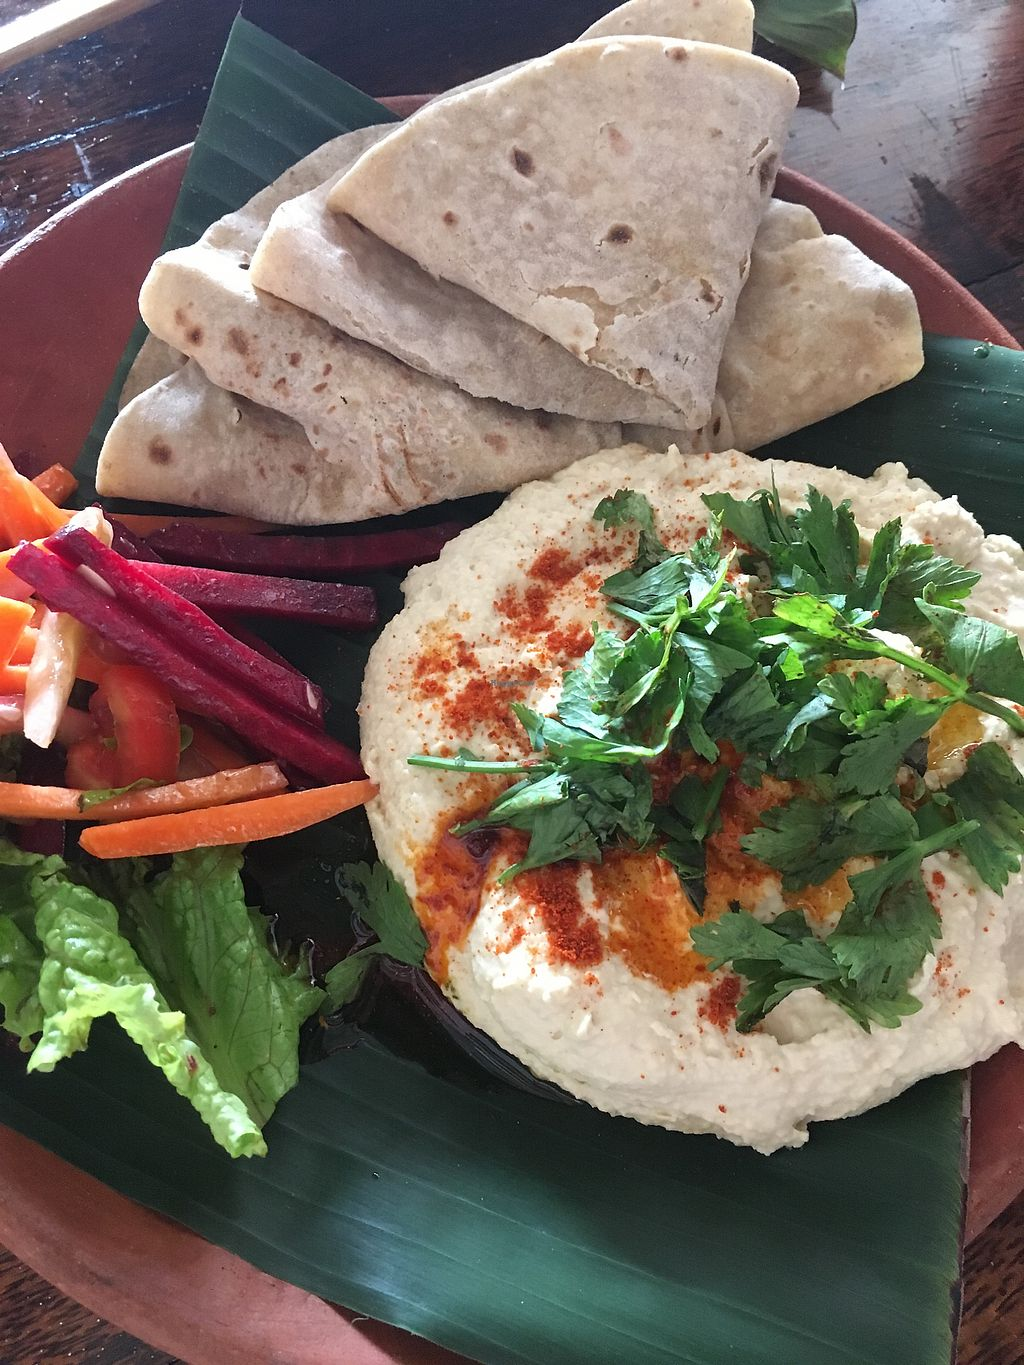 """Photo of Eco Puccini Lala  by <a href=""""/members/profile/Dianek"""">Dianek</a> <br/>Yummy homemade hummus  <br/> December 24, 2017  - <a href='/contact/abuse/image/66309/338658'>Report</a>"""